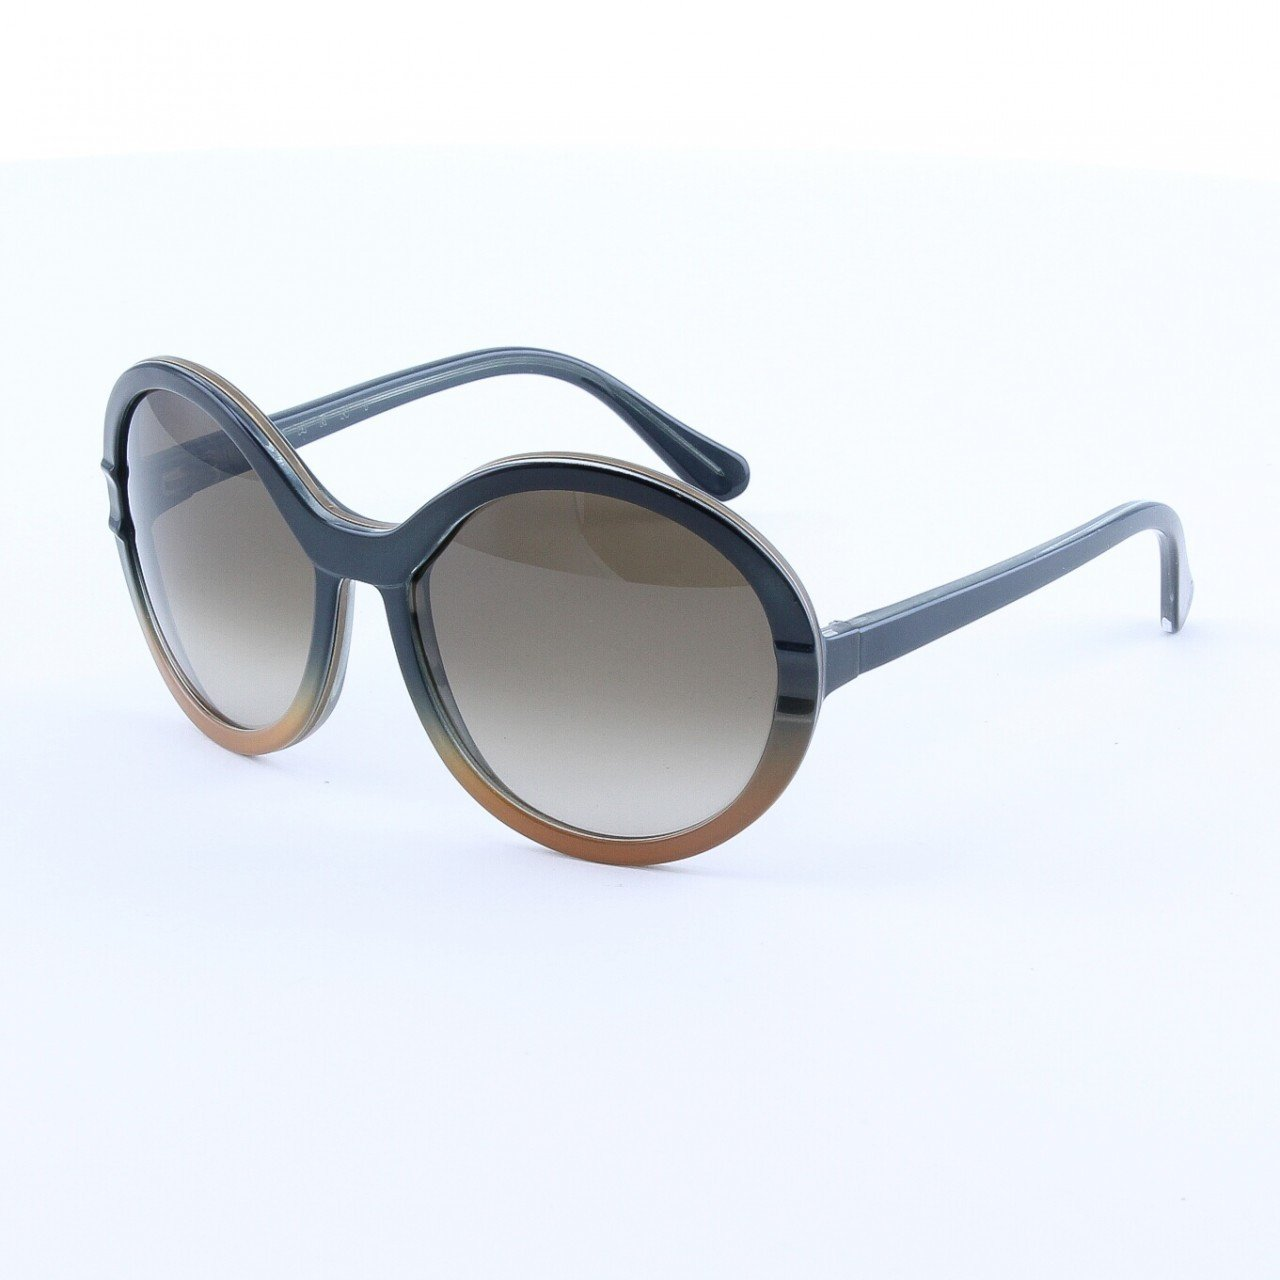 Marni MA145 Sunglasses 05 Deep Charcoal Gray Light Tan, Gray Gradient Lenses